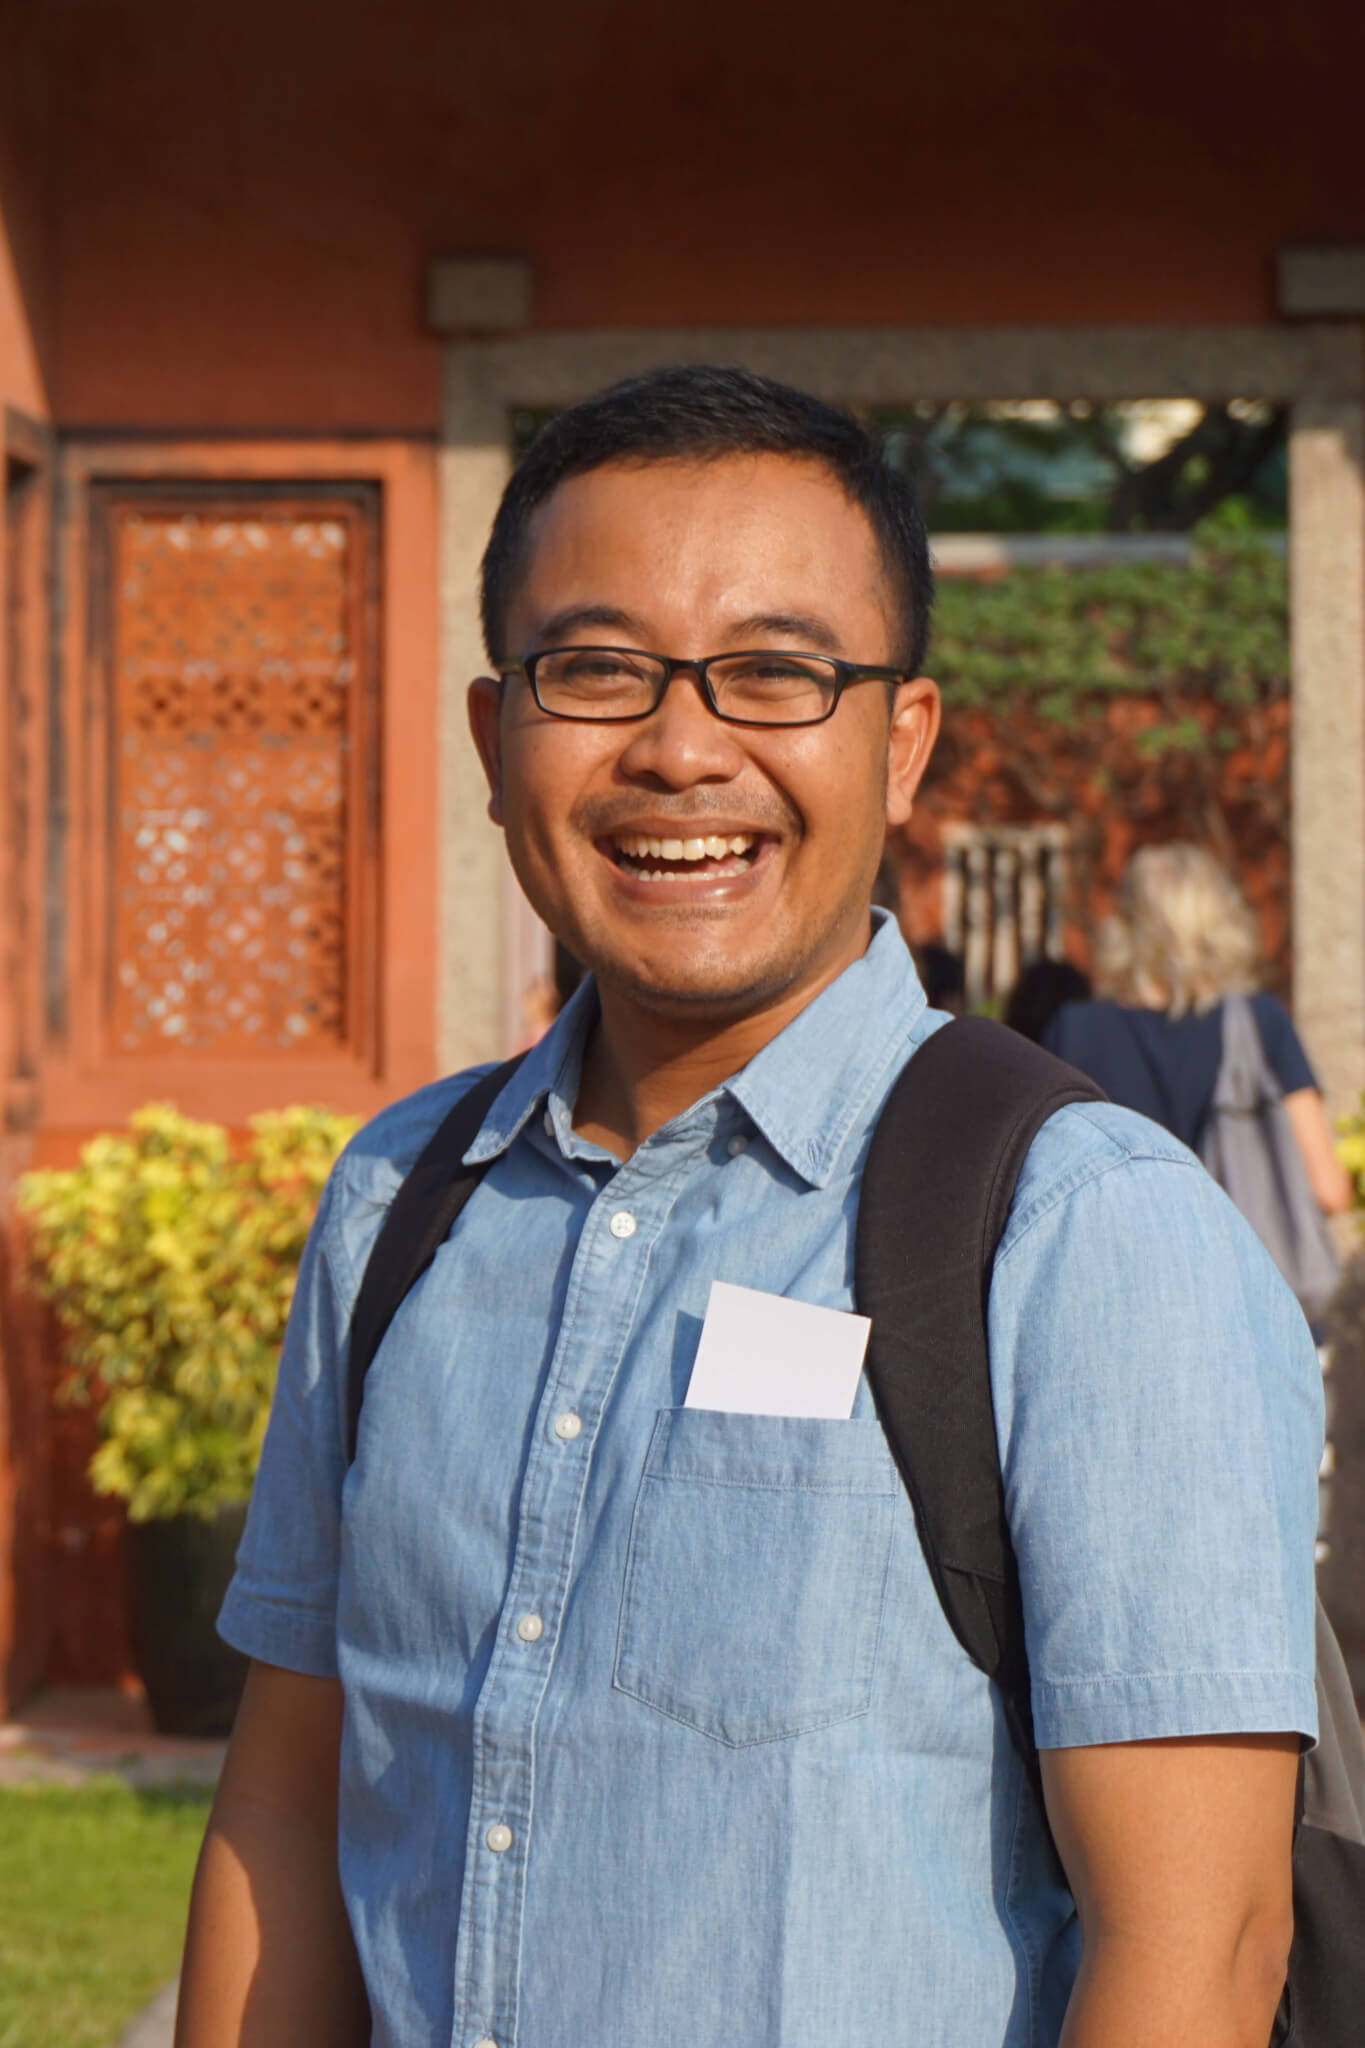 Karmalaya-Partner in Indonesien: Ketut Purwantoro